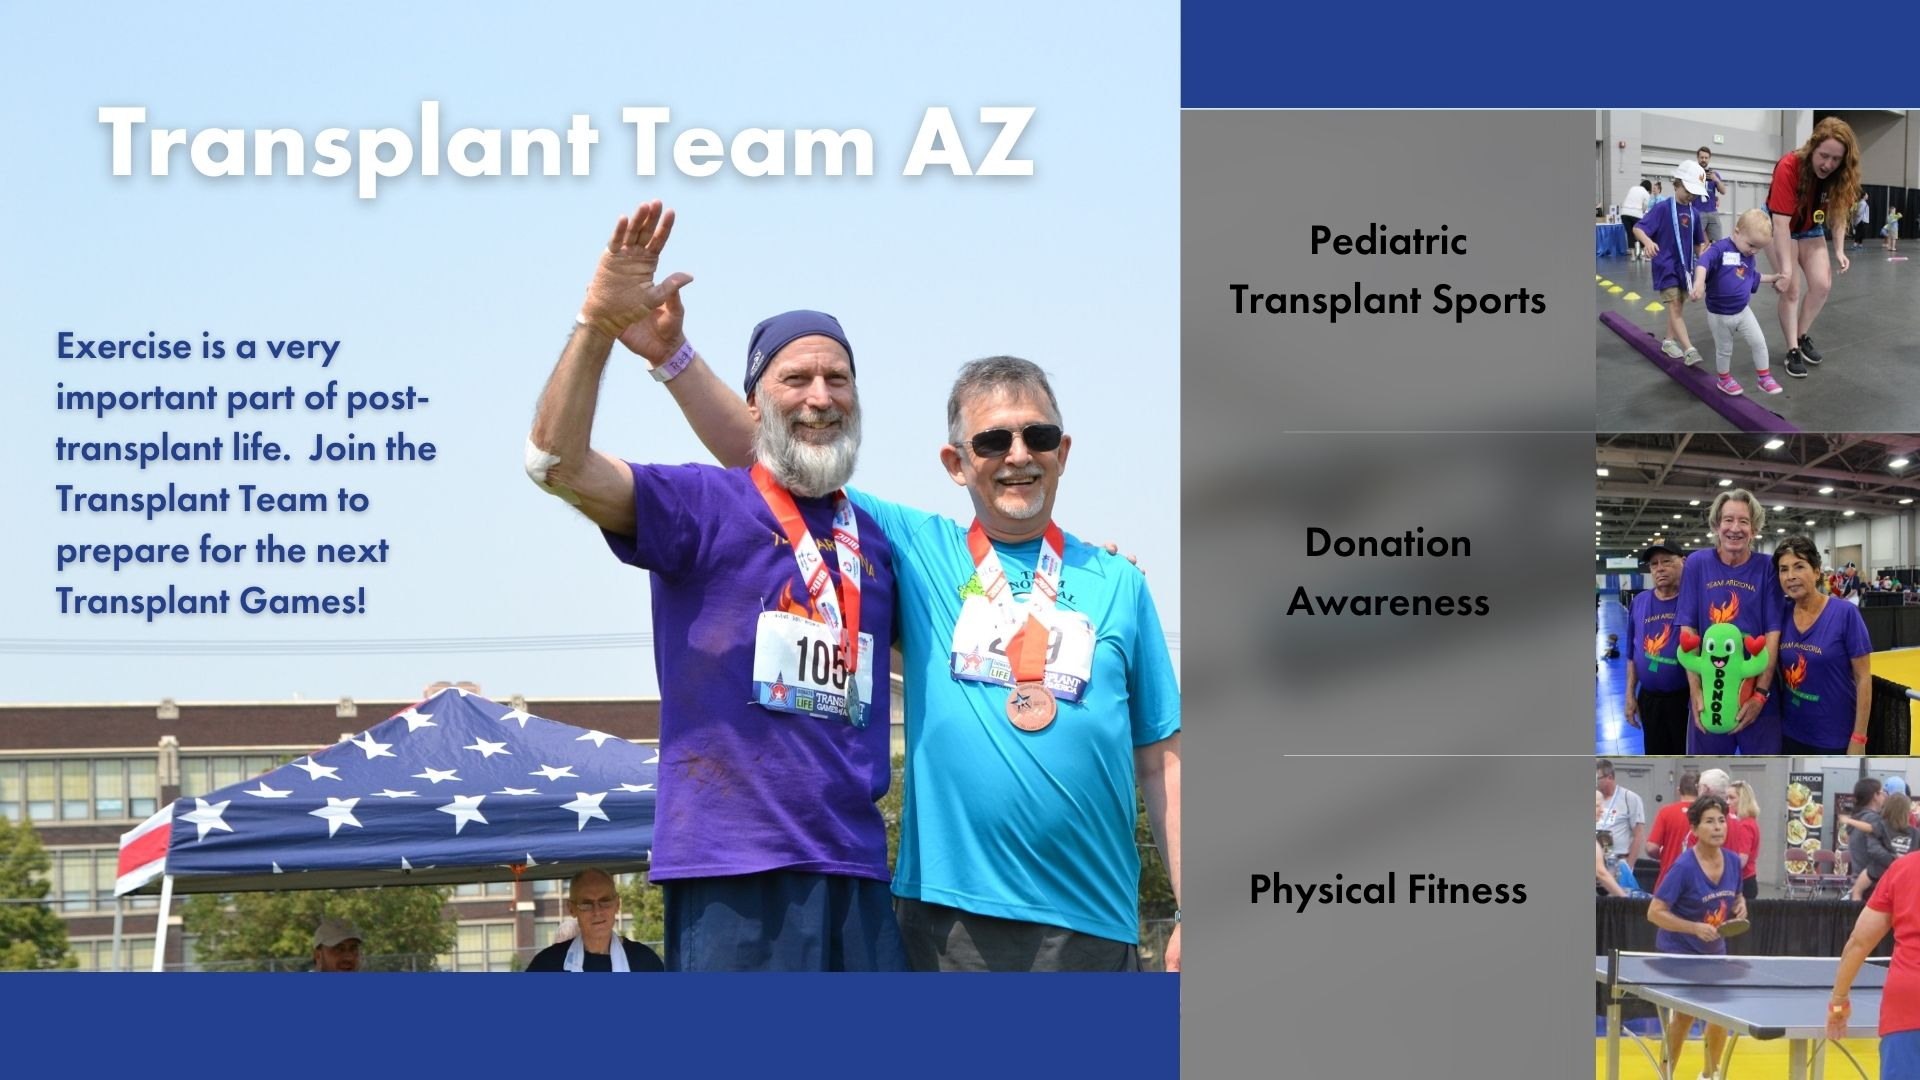 kidney recipient rejoices after receiving gold medal, Transplant Team AZ, exercise is very important post transplant